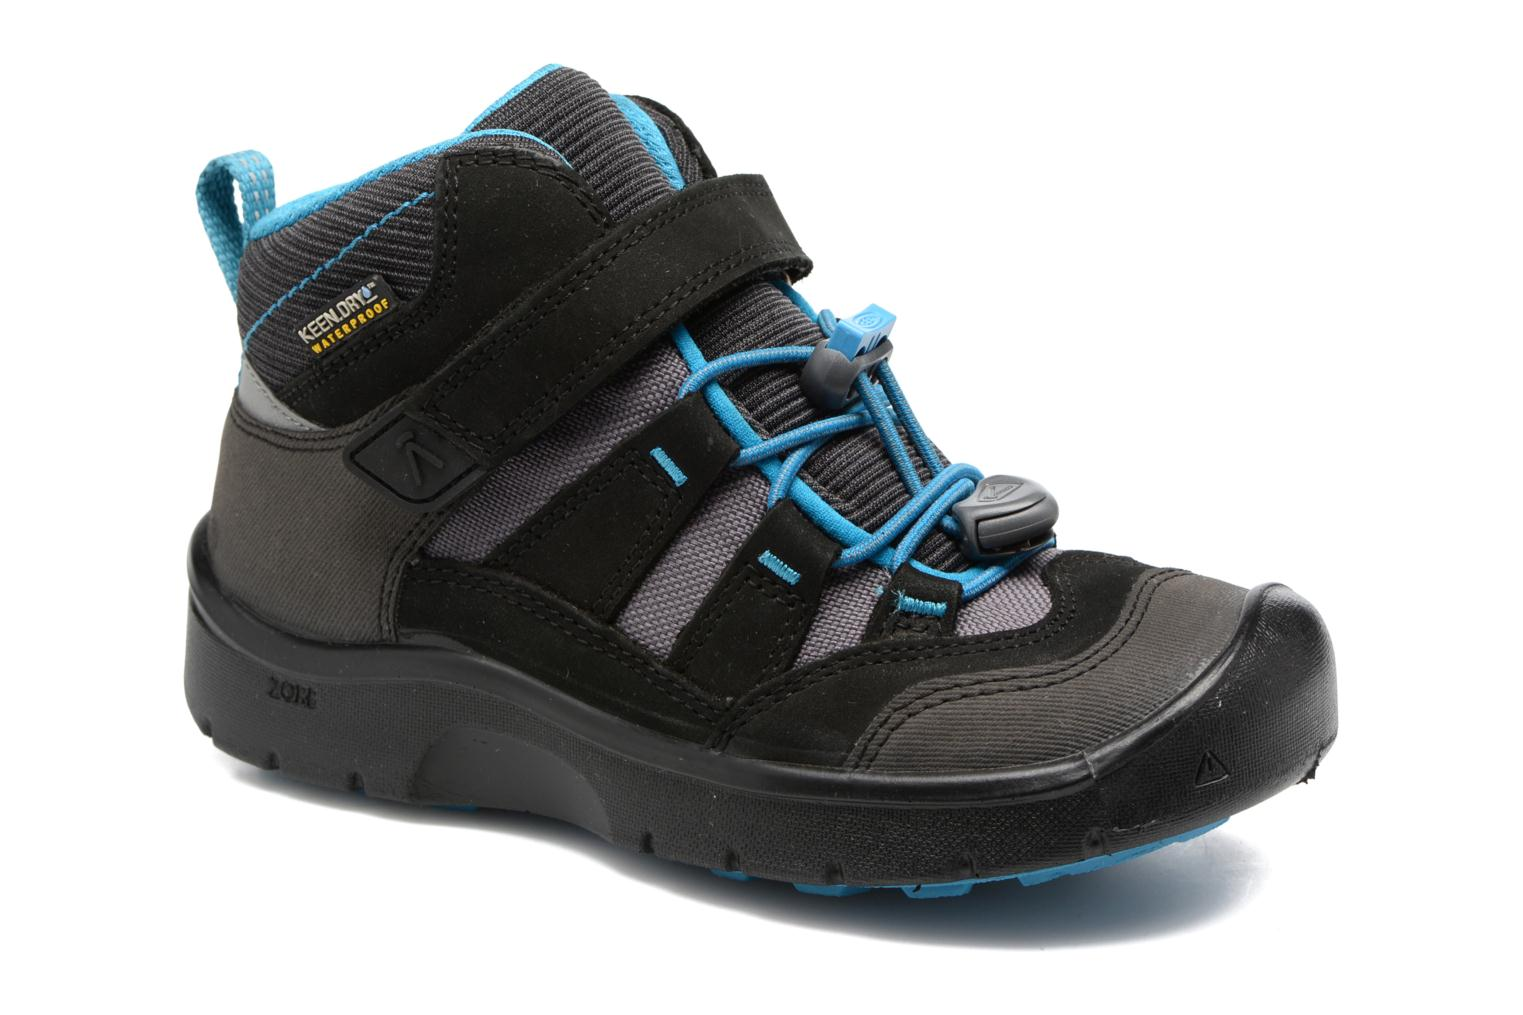 Hikeport Mid children by KeenRebajas - 10%